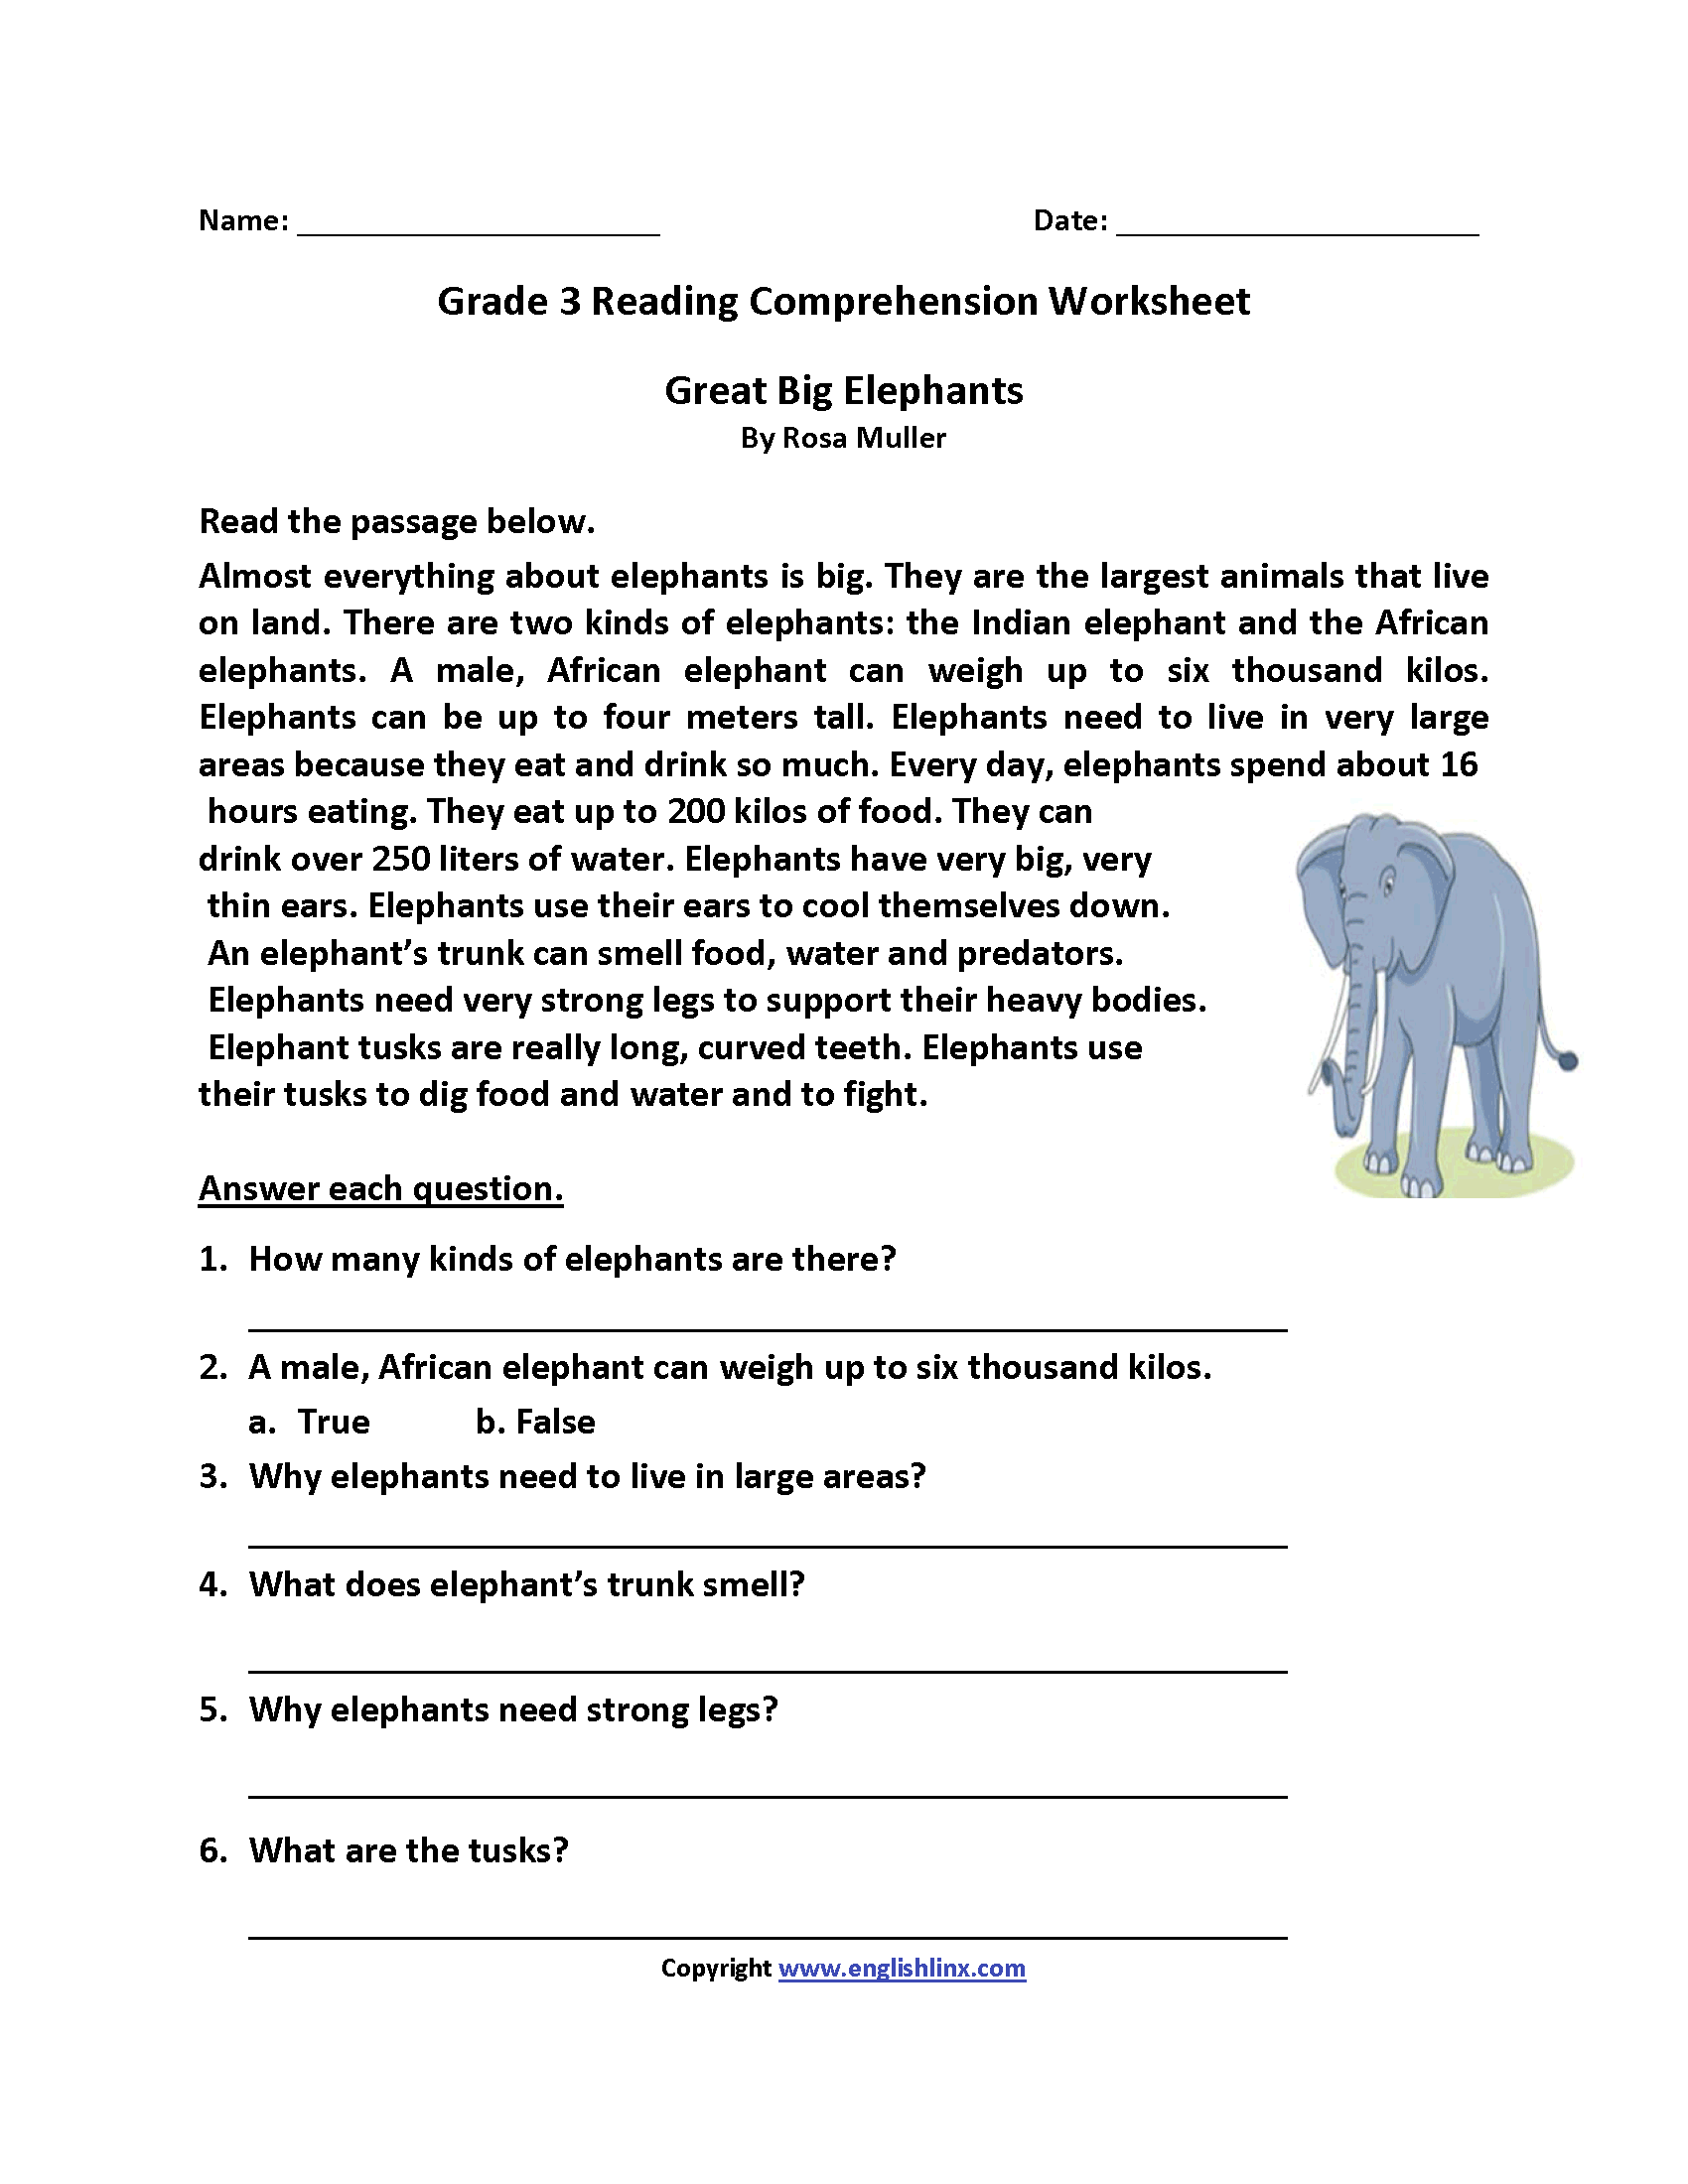 Worksheets Third Grade Reading Comprehension Worksheets great big elephants third grade reading worksheets board worksheets